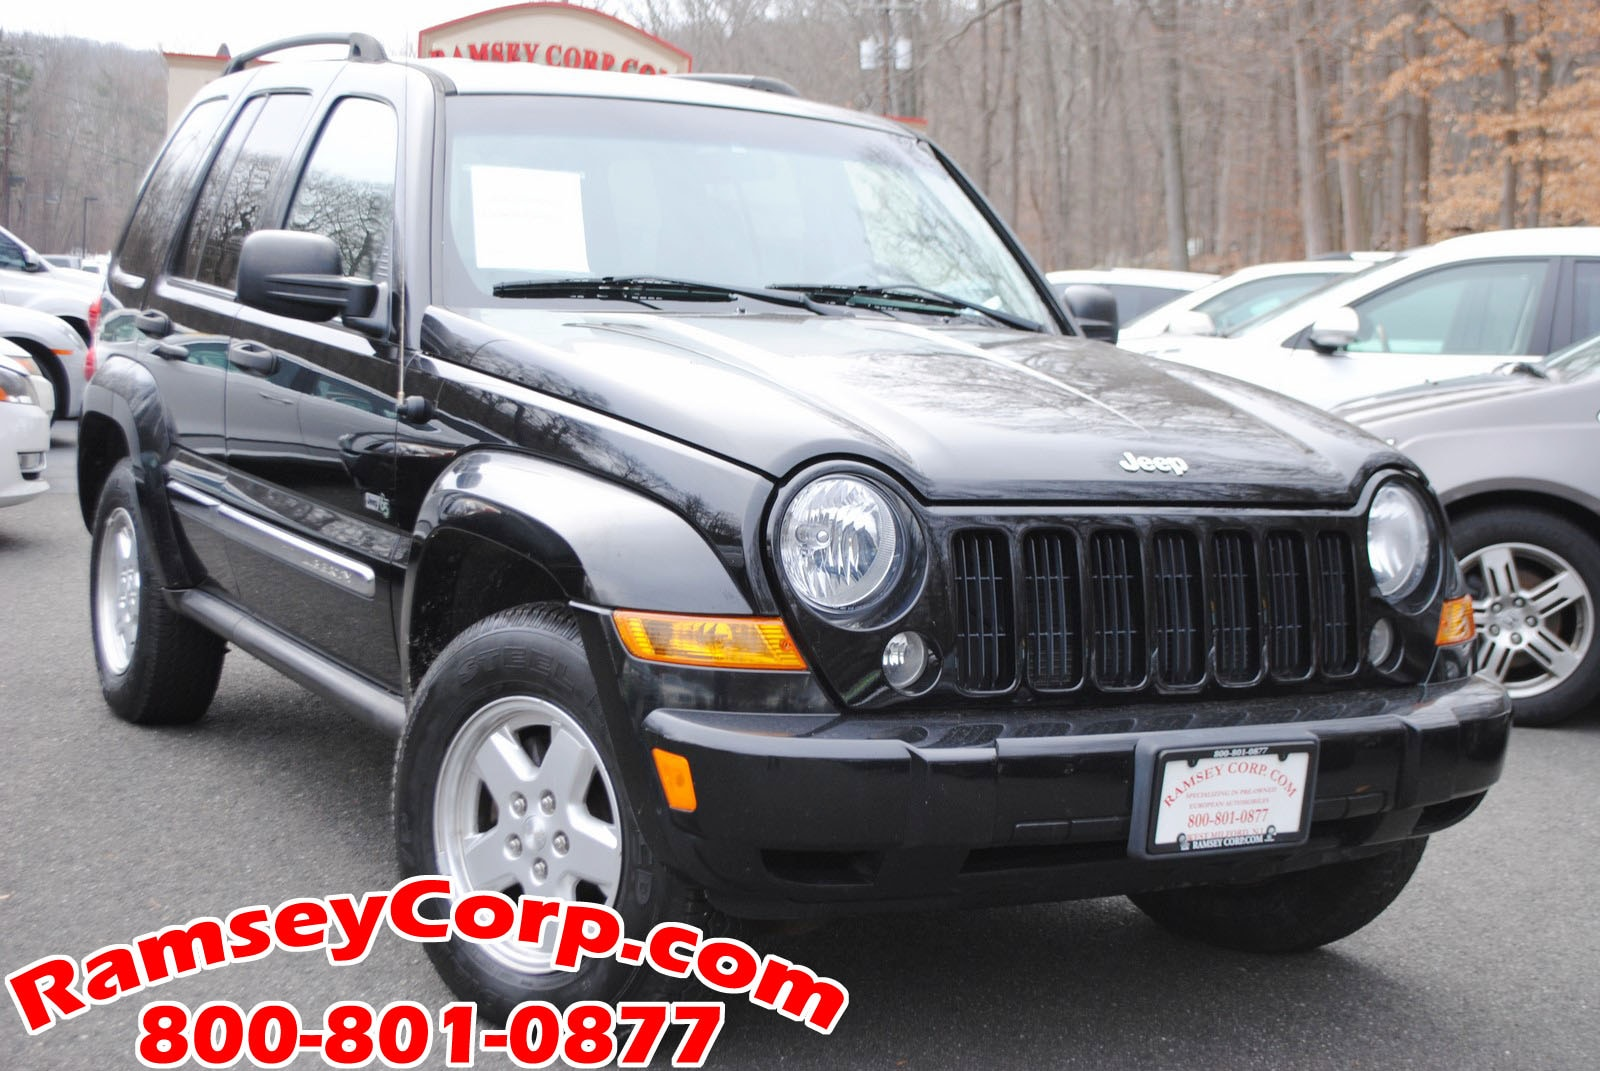 Used 2006 Jeep Liberty For Sale at Ramsey Corp  | VIN